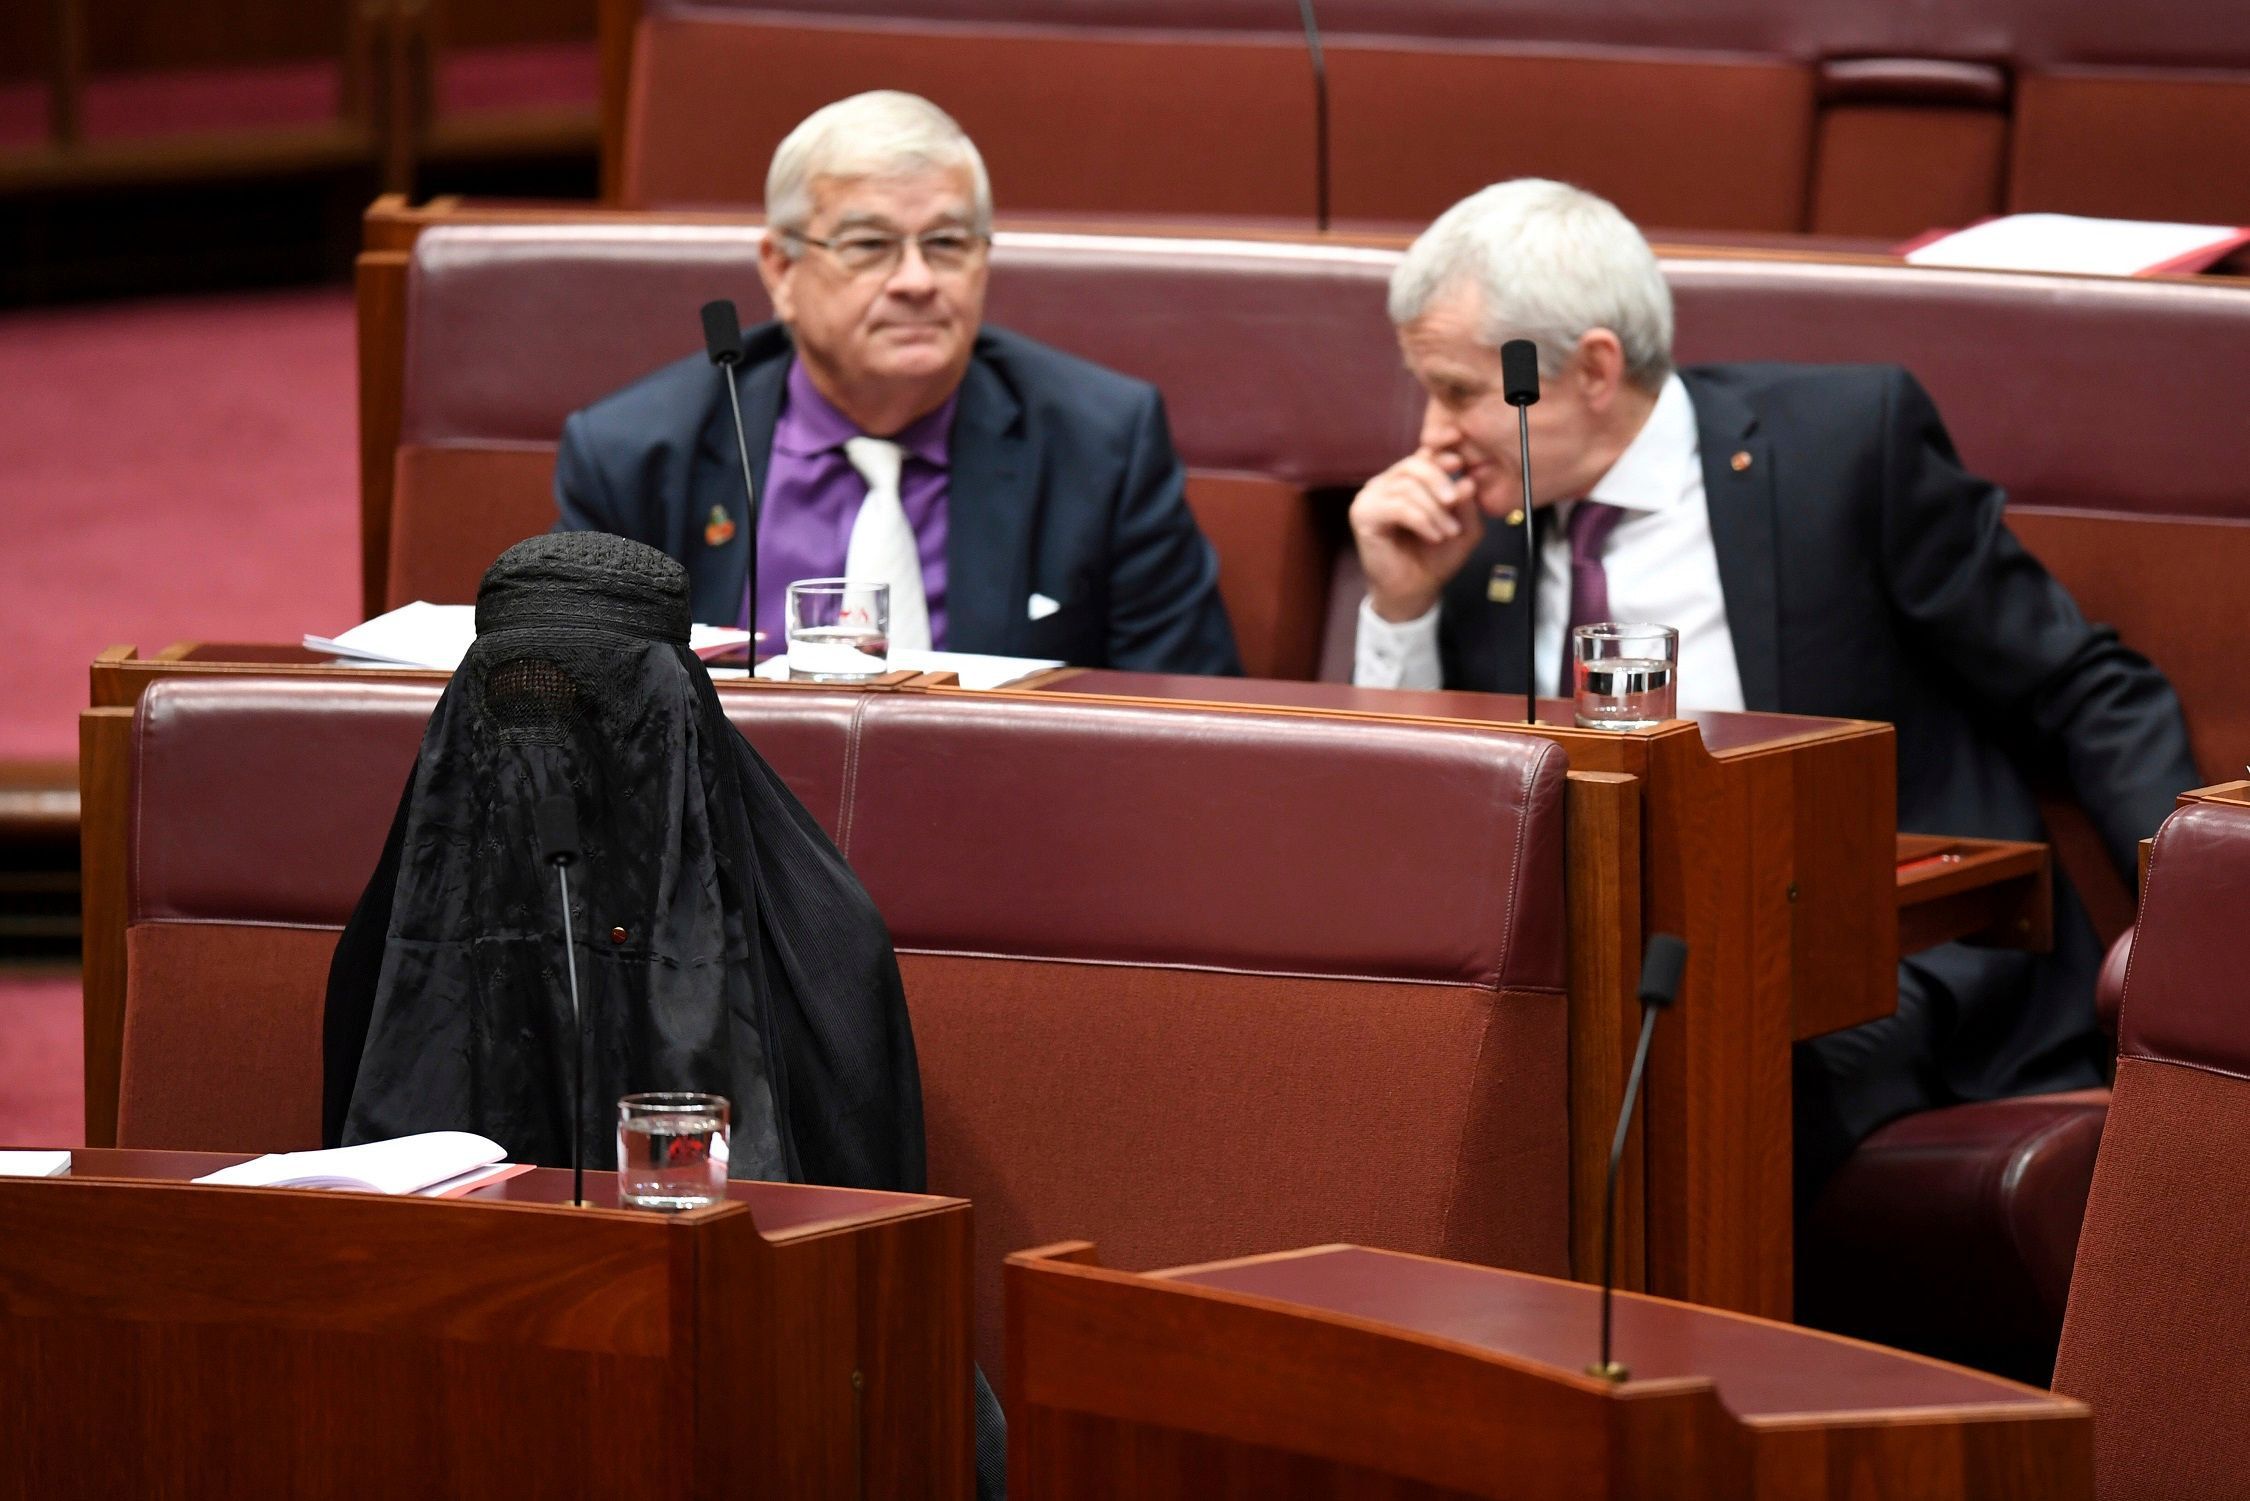 Australian anti-immigration senator wears burqa to parliament, sparking debate